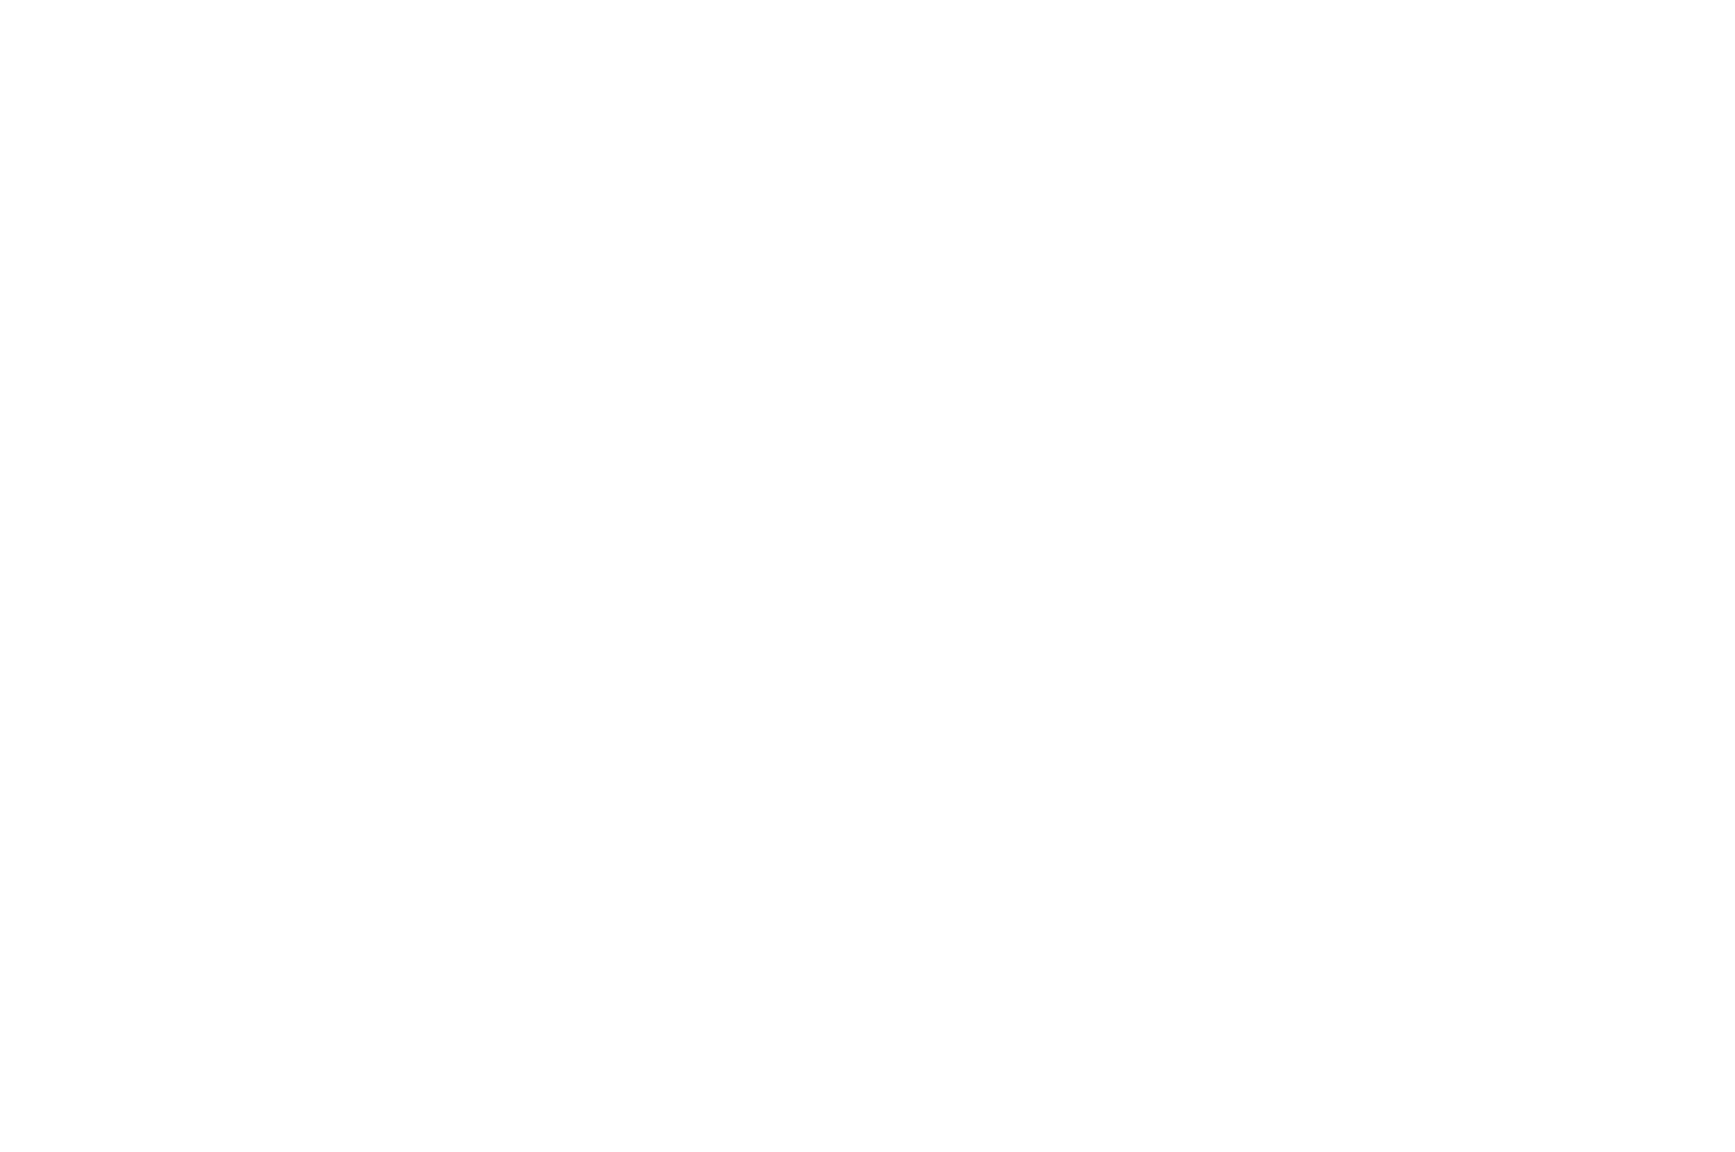 Mosaic Film Festival of Arts and Culture